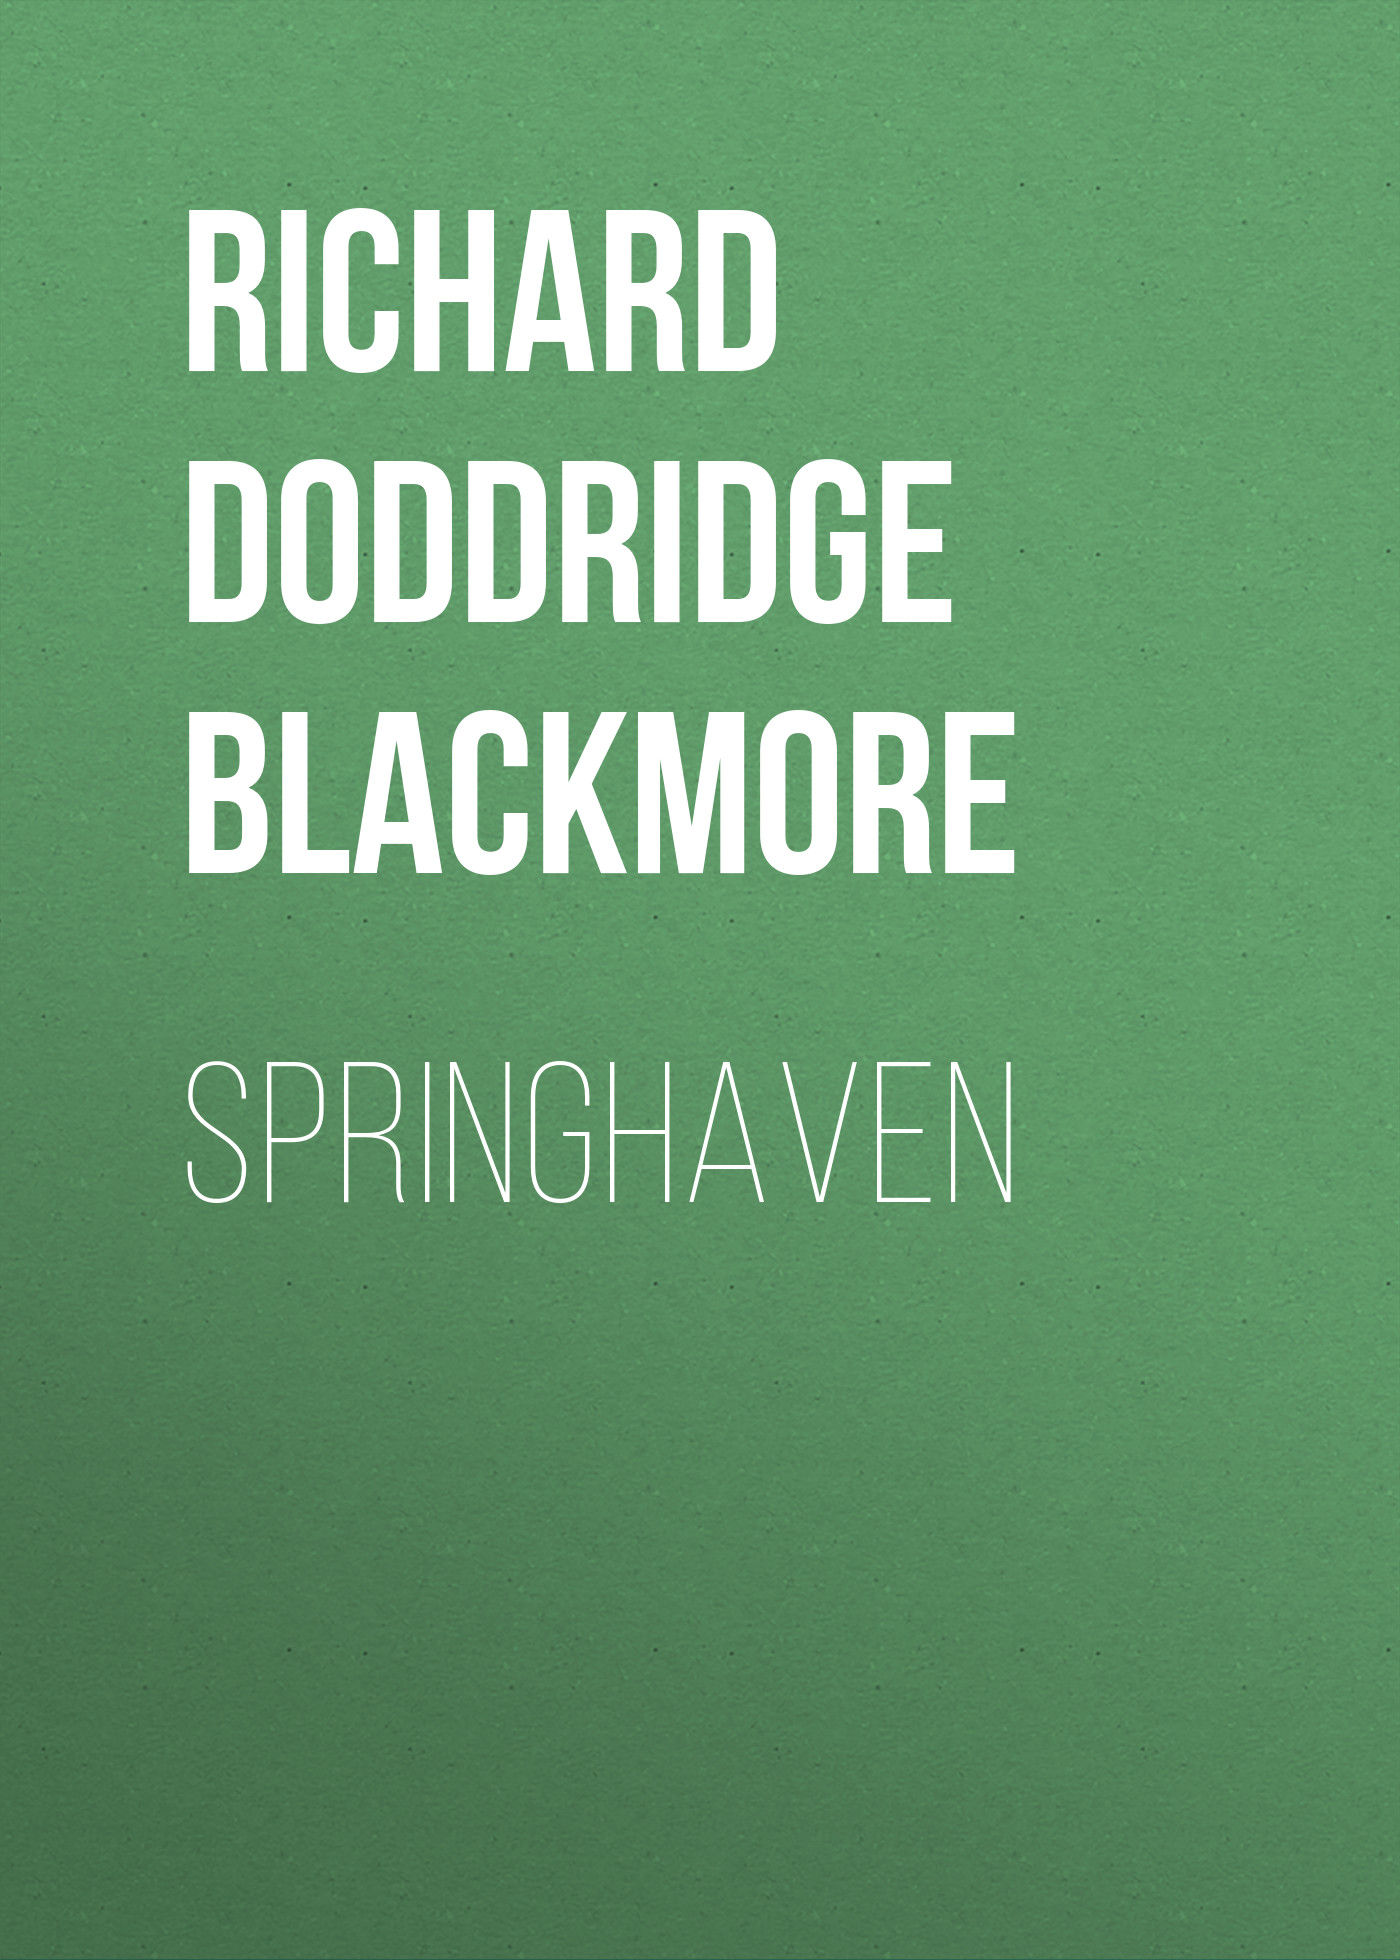 Richard Doddridge Blackmore Springhaven blackmore richard doddridge clara vaughan volume 1 of 3